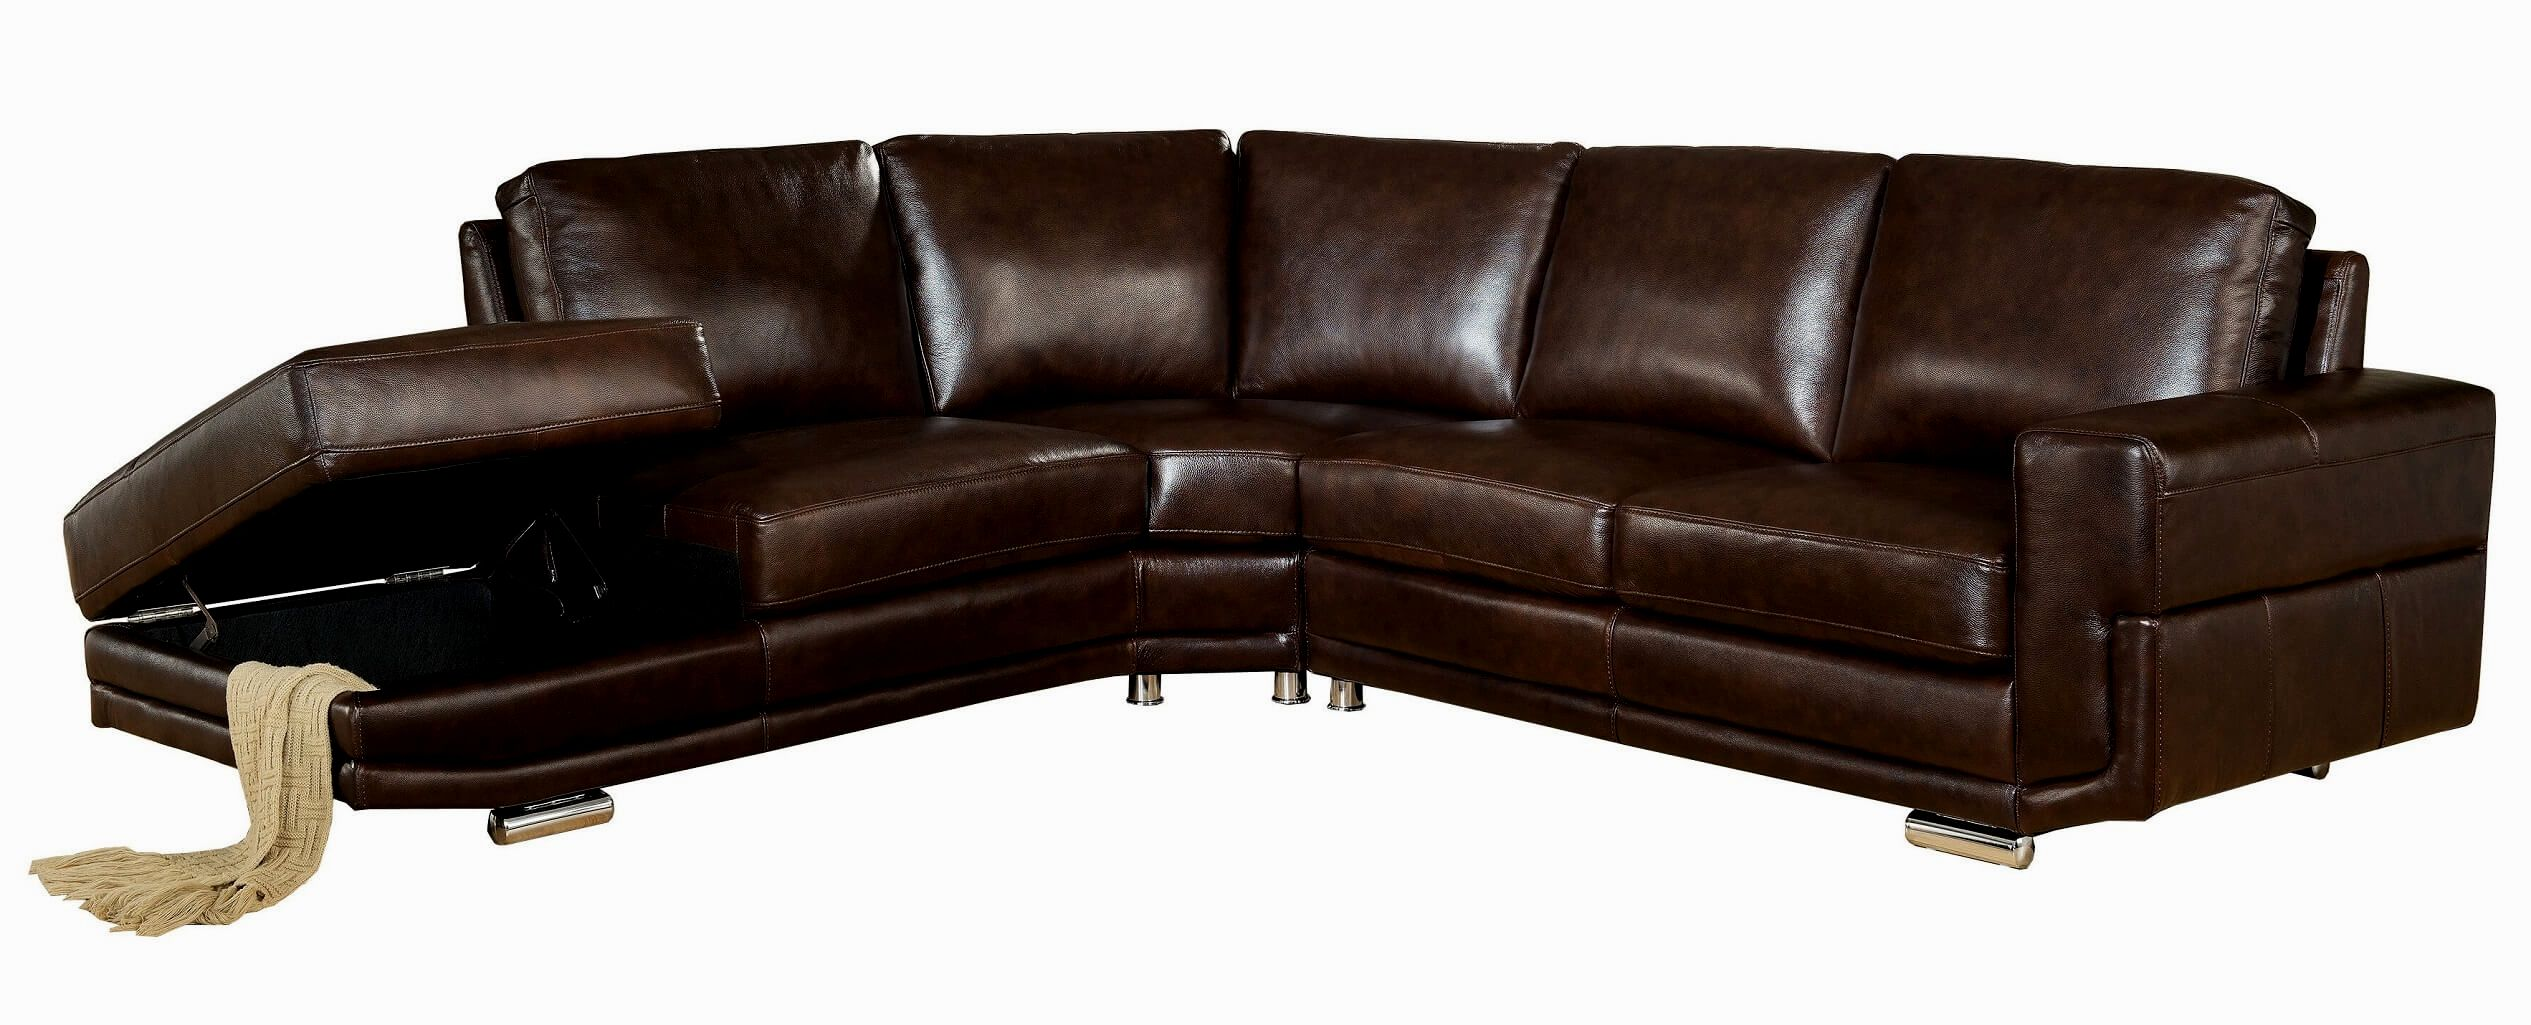 lane home furnishings leather sofa and loveseat from the bowden collection velvet vintage finest gallery modern design ideas best of construction